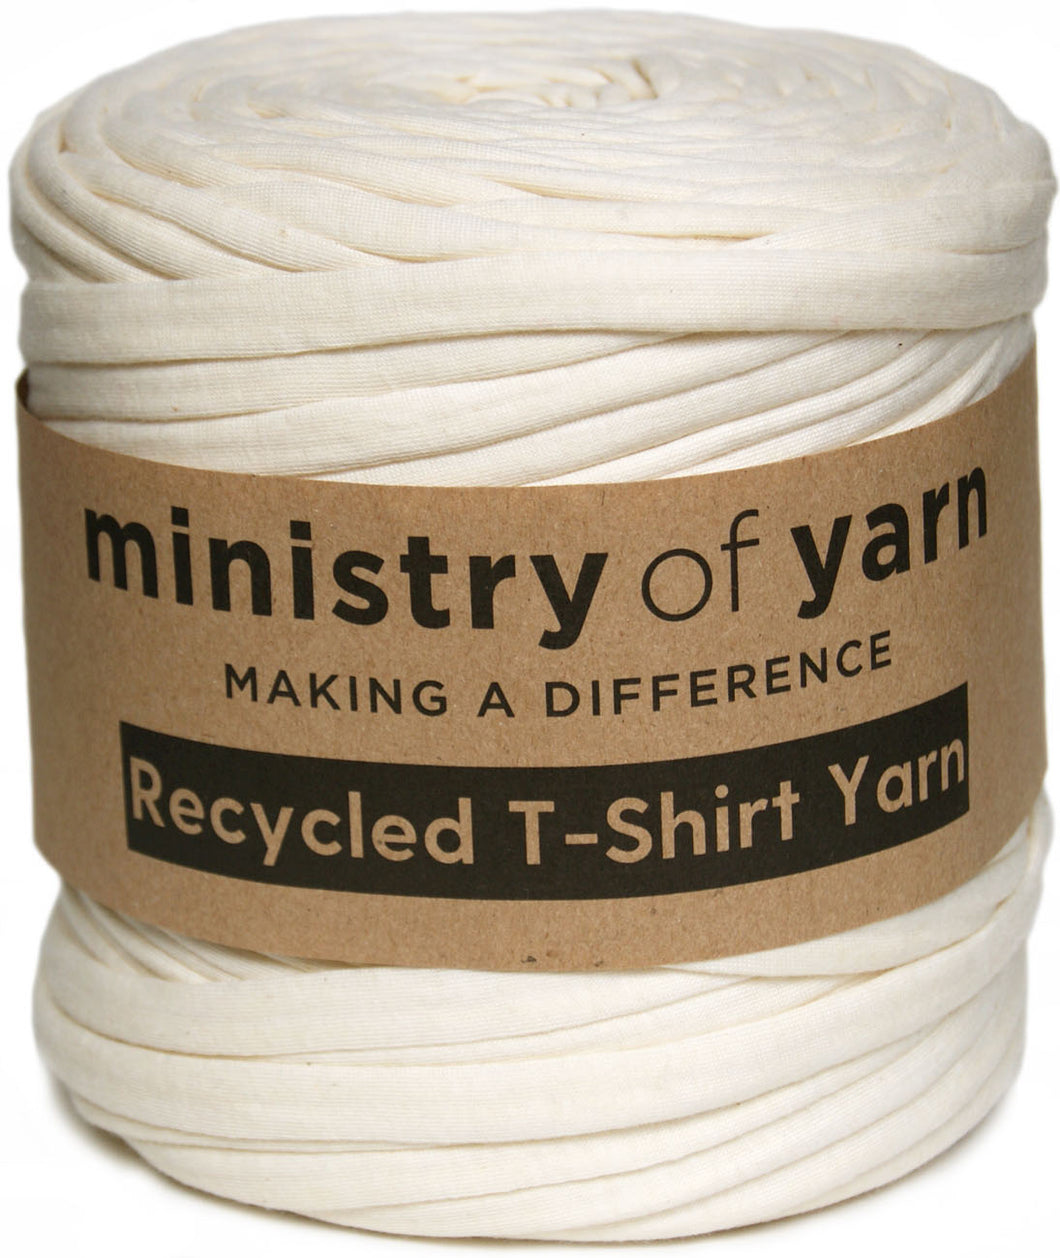 Cream eco friendly recycled t-shirt yarn Australia